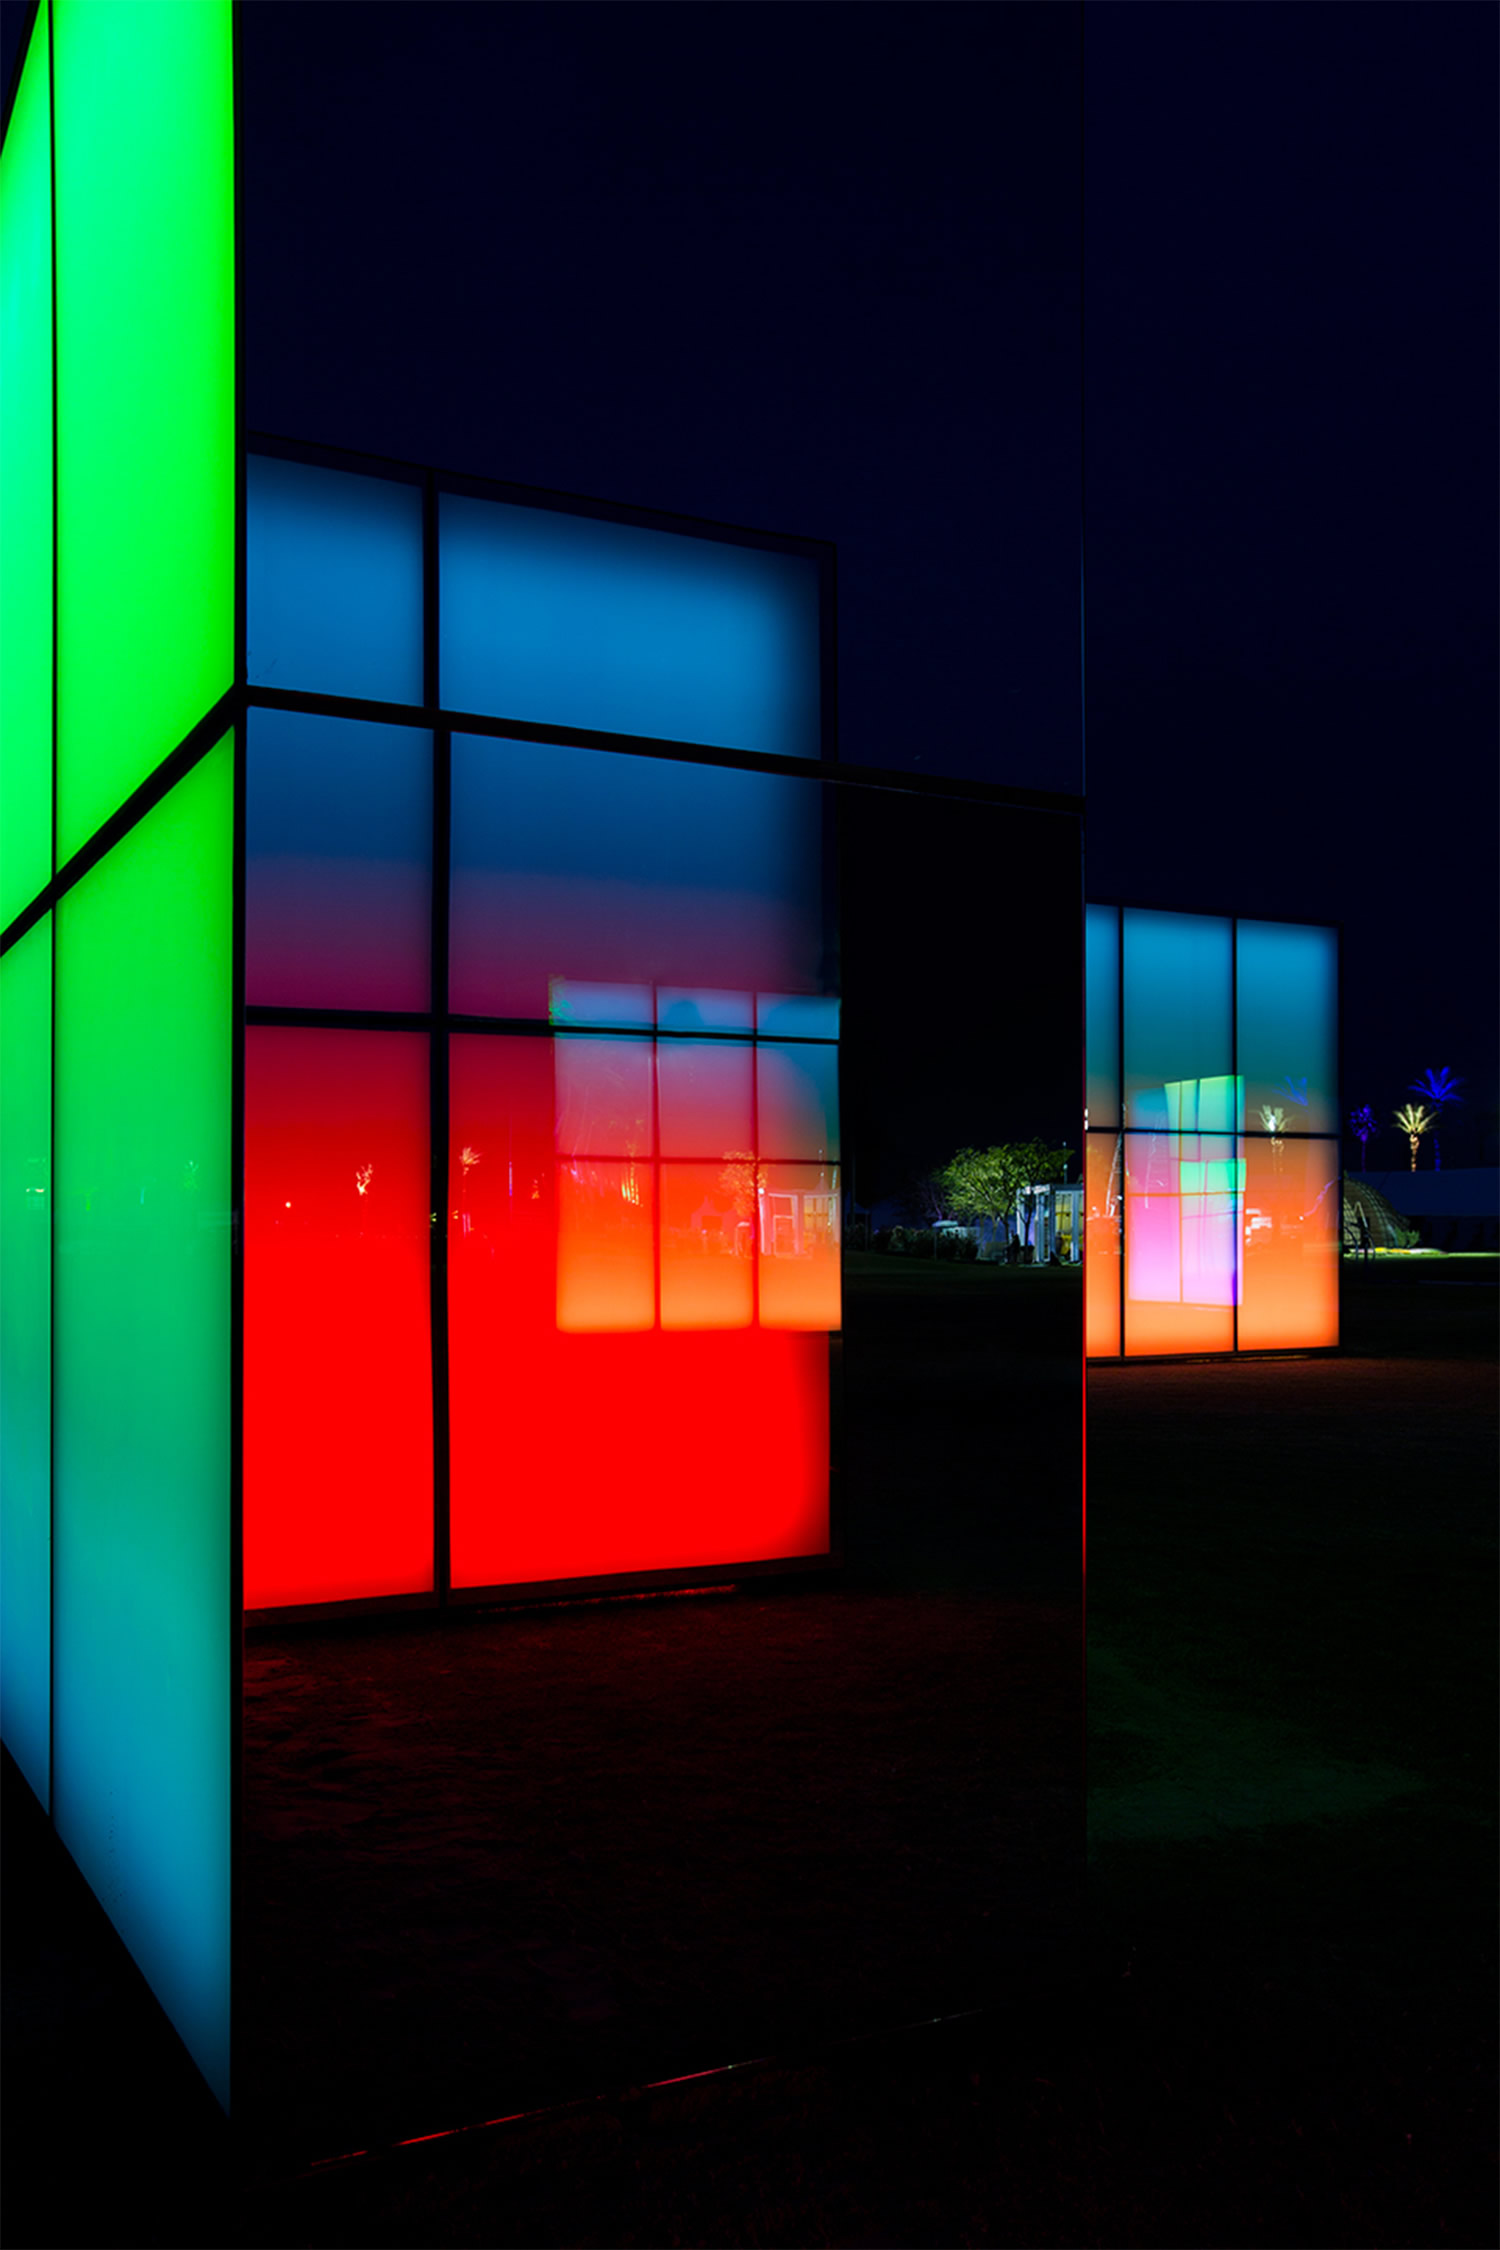 colored blocks in coachella by phillip k smith